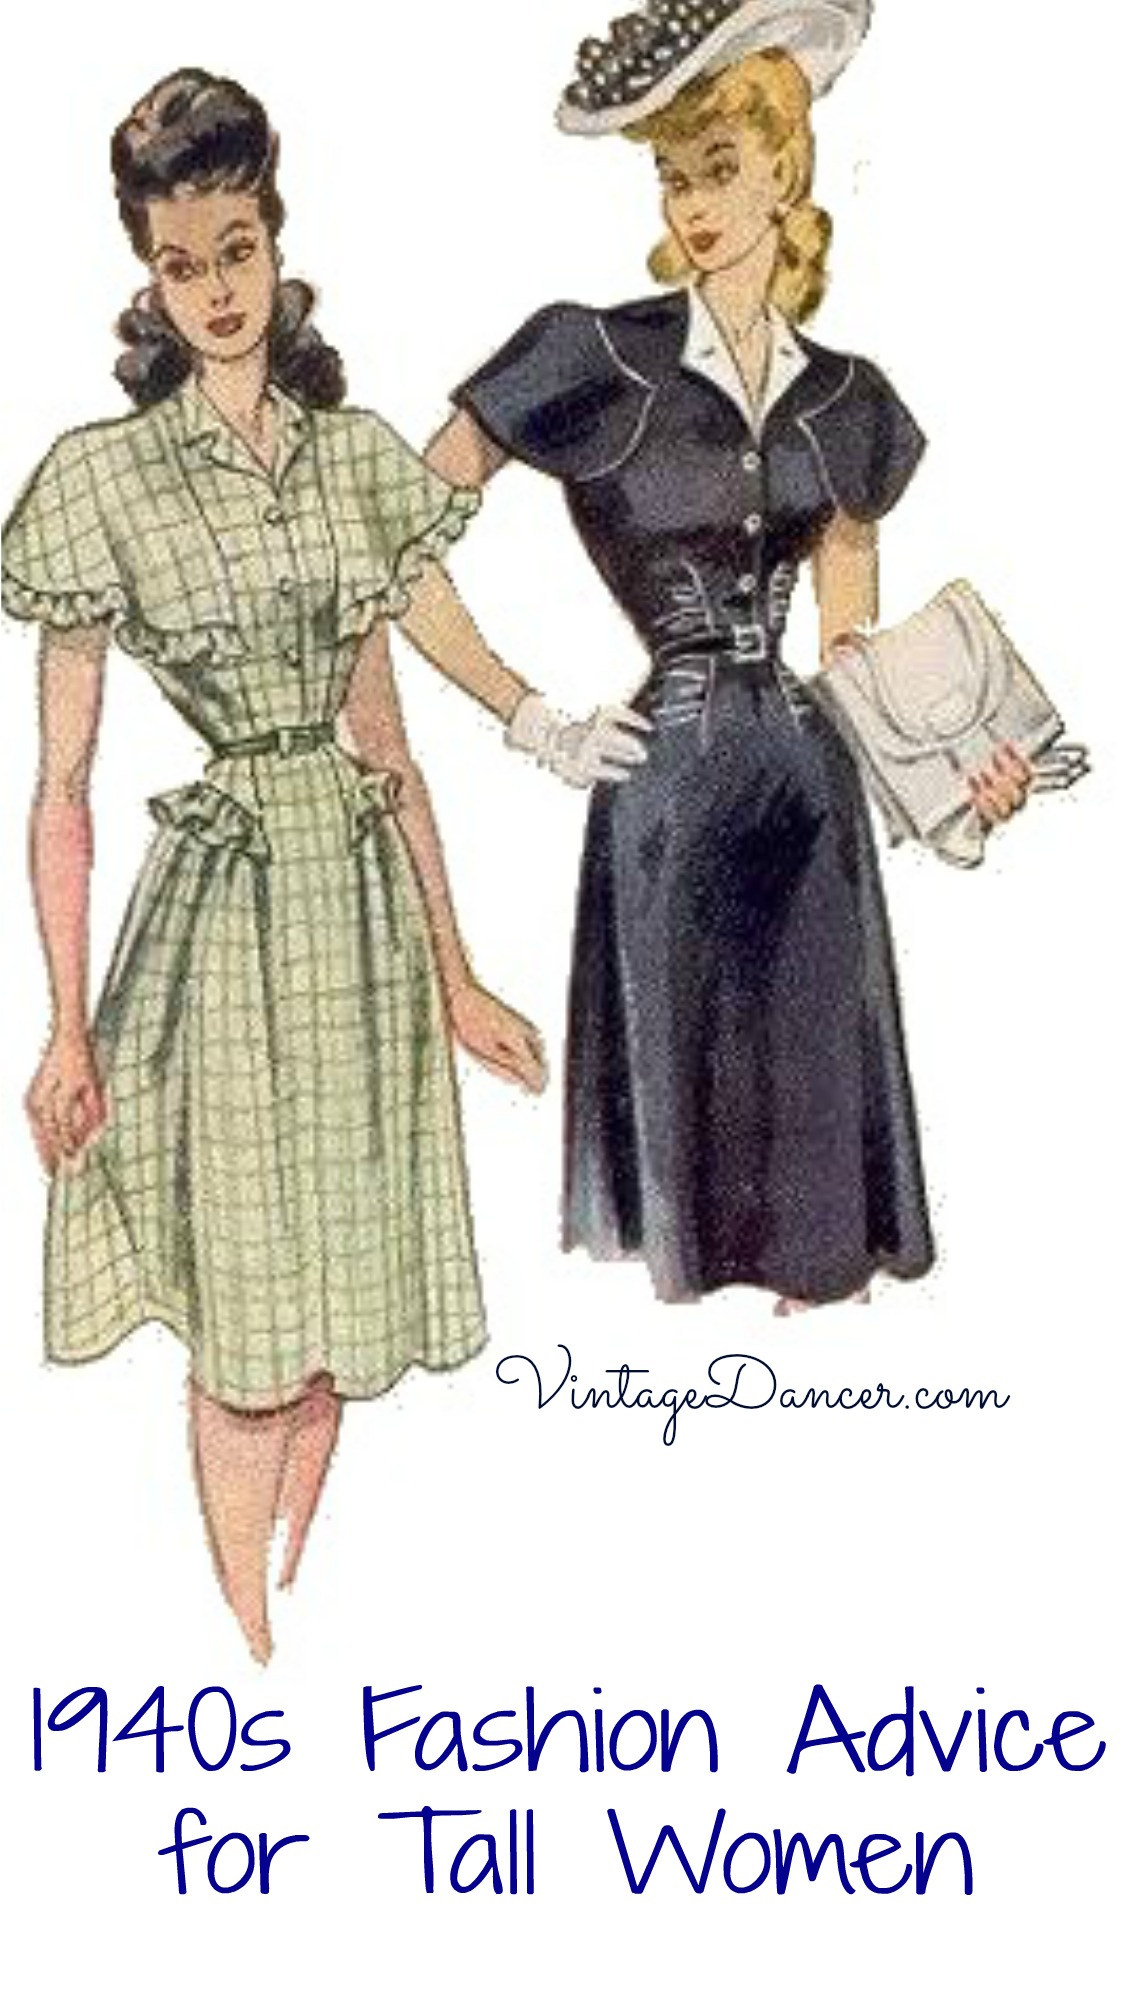 1940s Fashion Advice for Tall Women